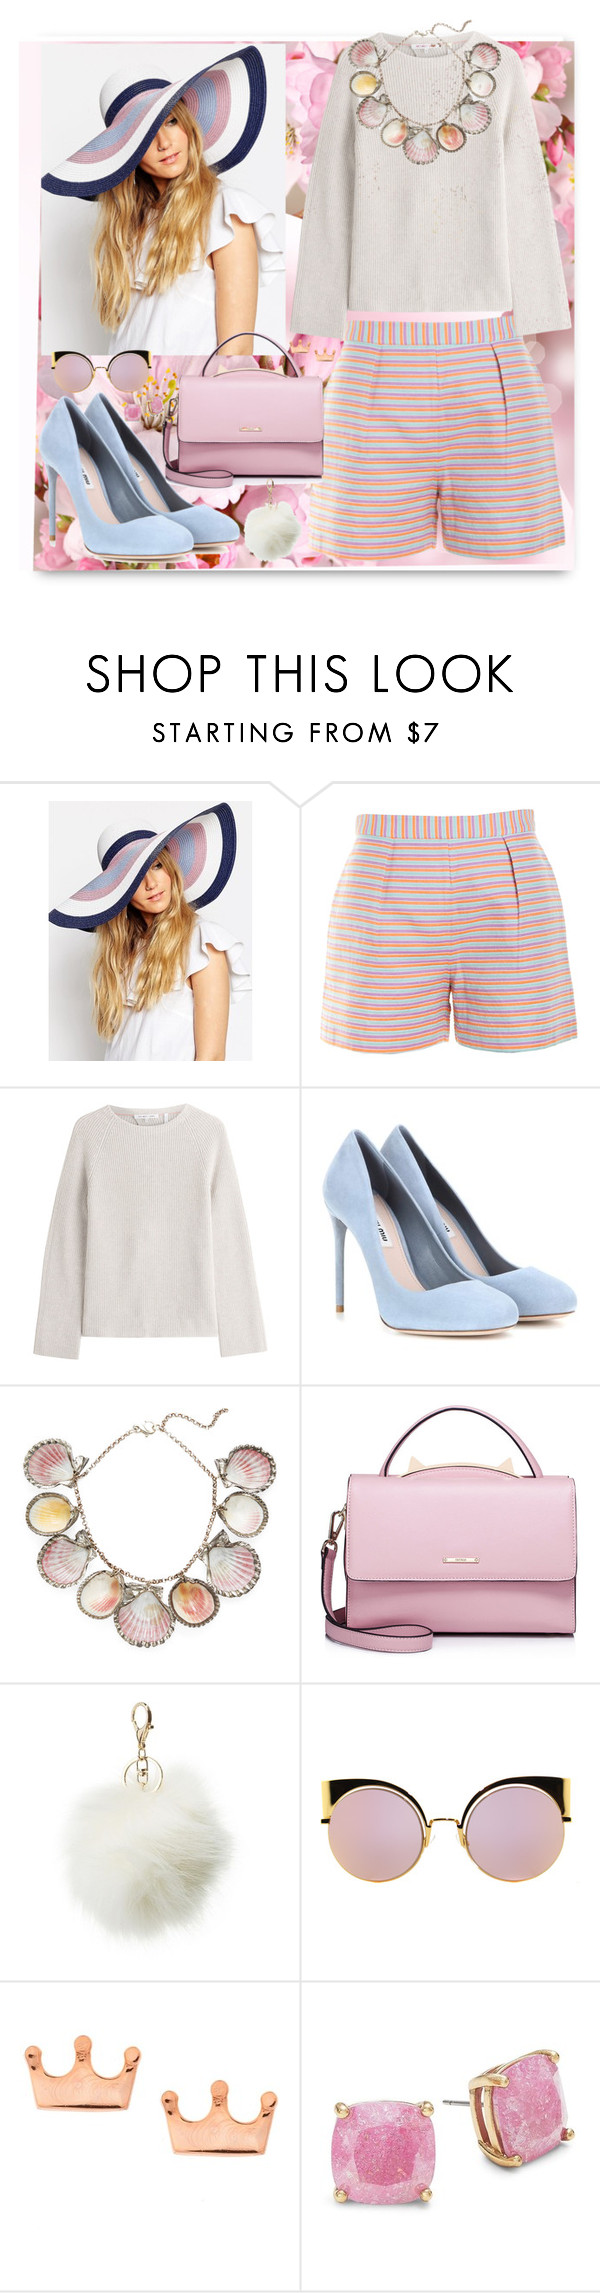 """pink flowers"" by clairabel16 ❤ liked on Polyvore featuring ASOS, Hutch, Helmut Lang, Miu Miu, Paolo Costagli, WithChic, Charlotte Russe, Fendi, Mminimal and Kate Spade"